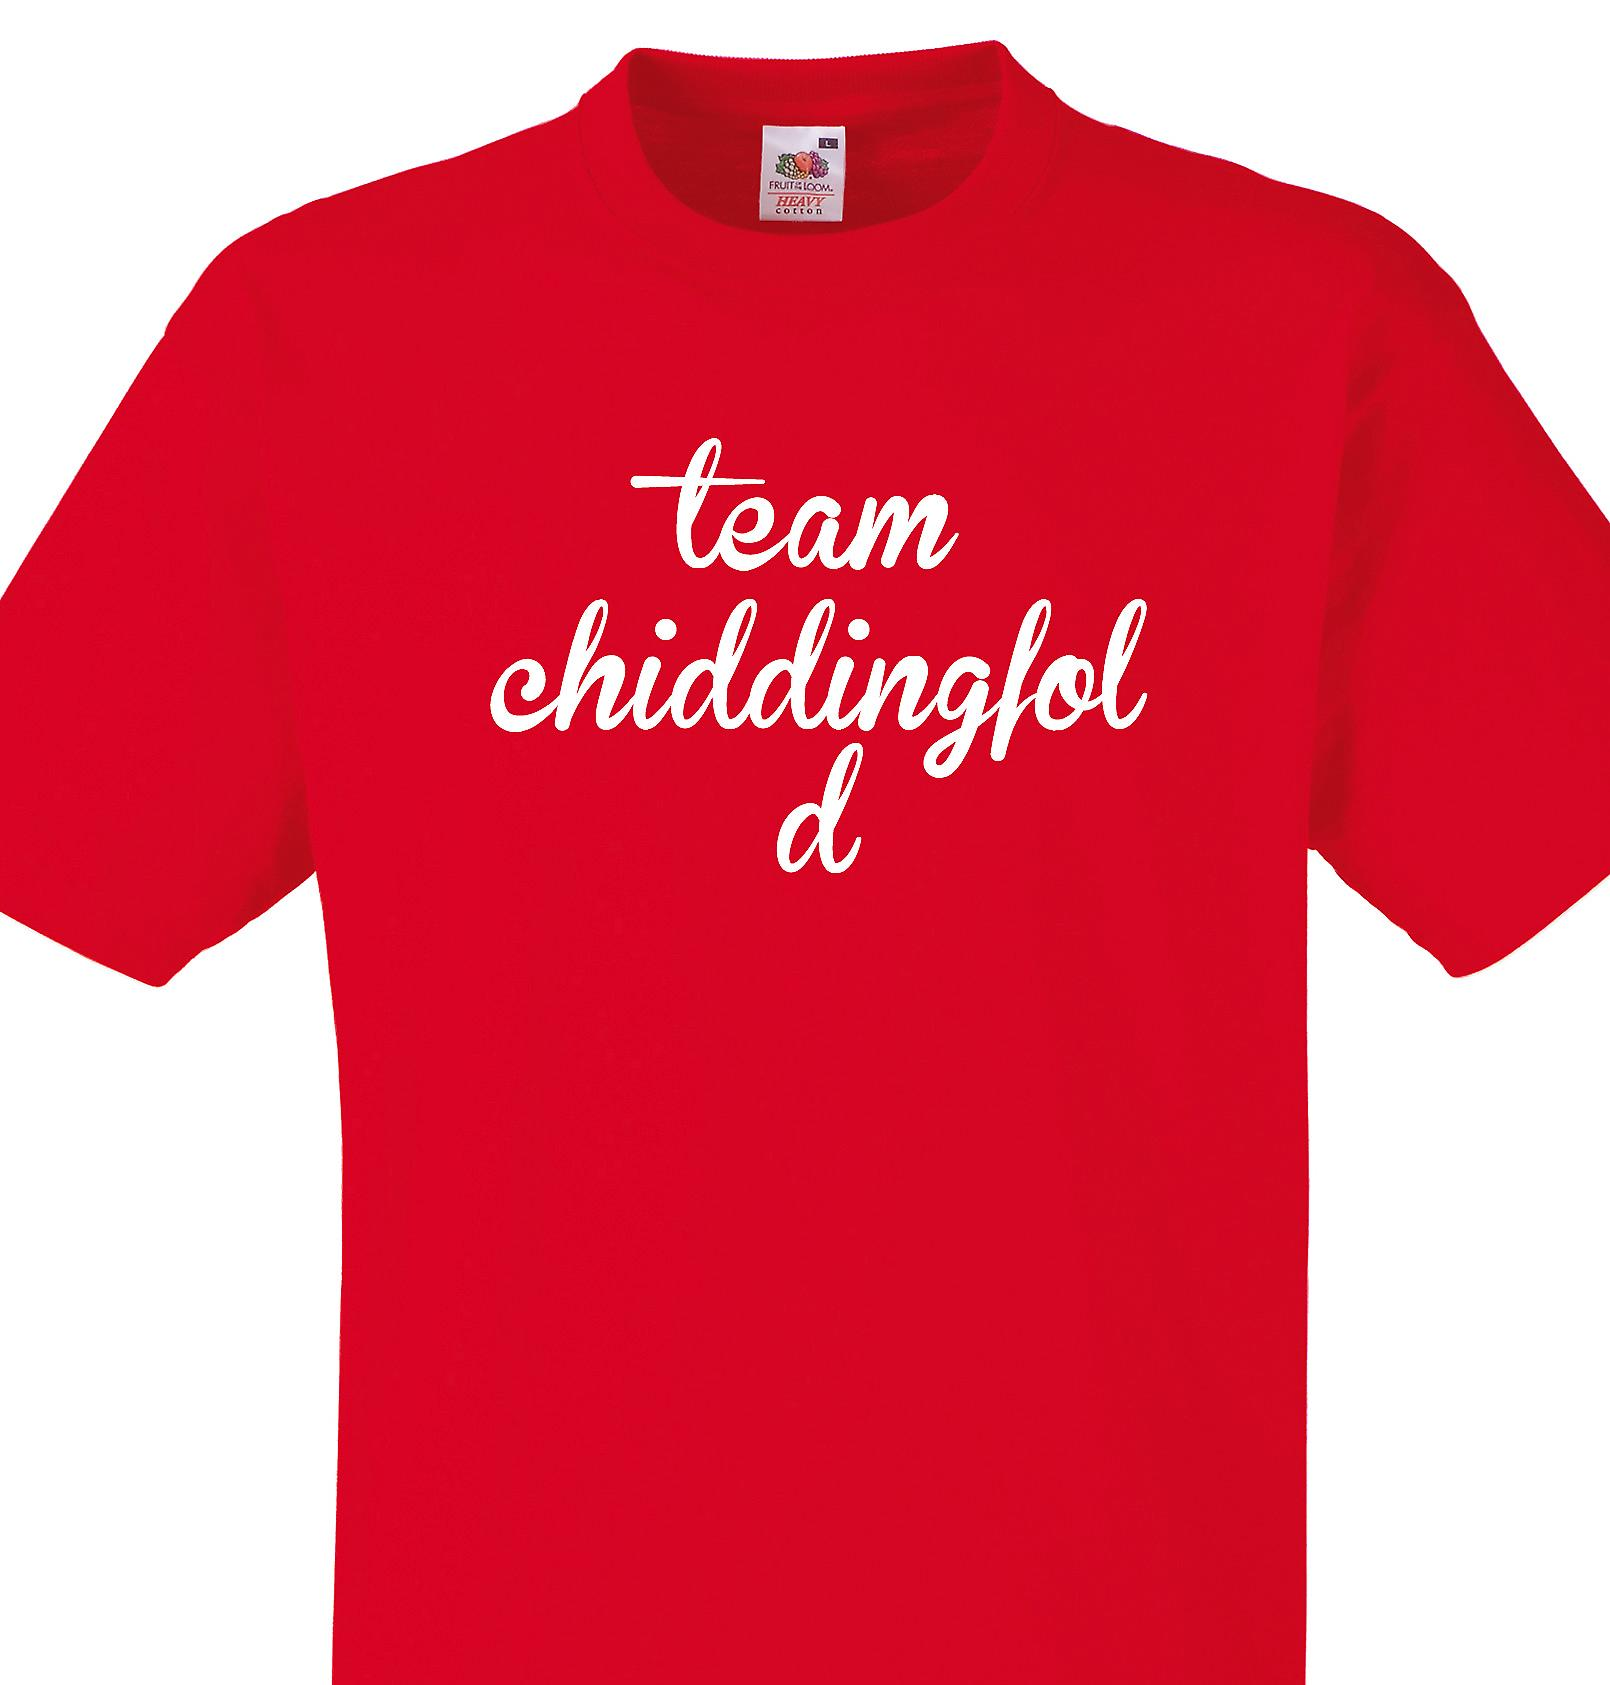 Team Chiddingfold Red T shirt